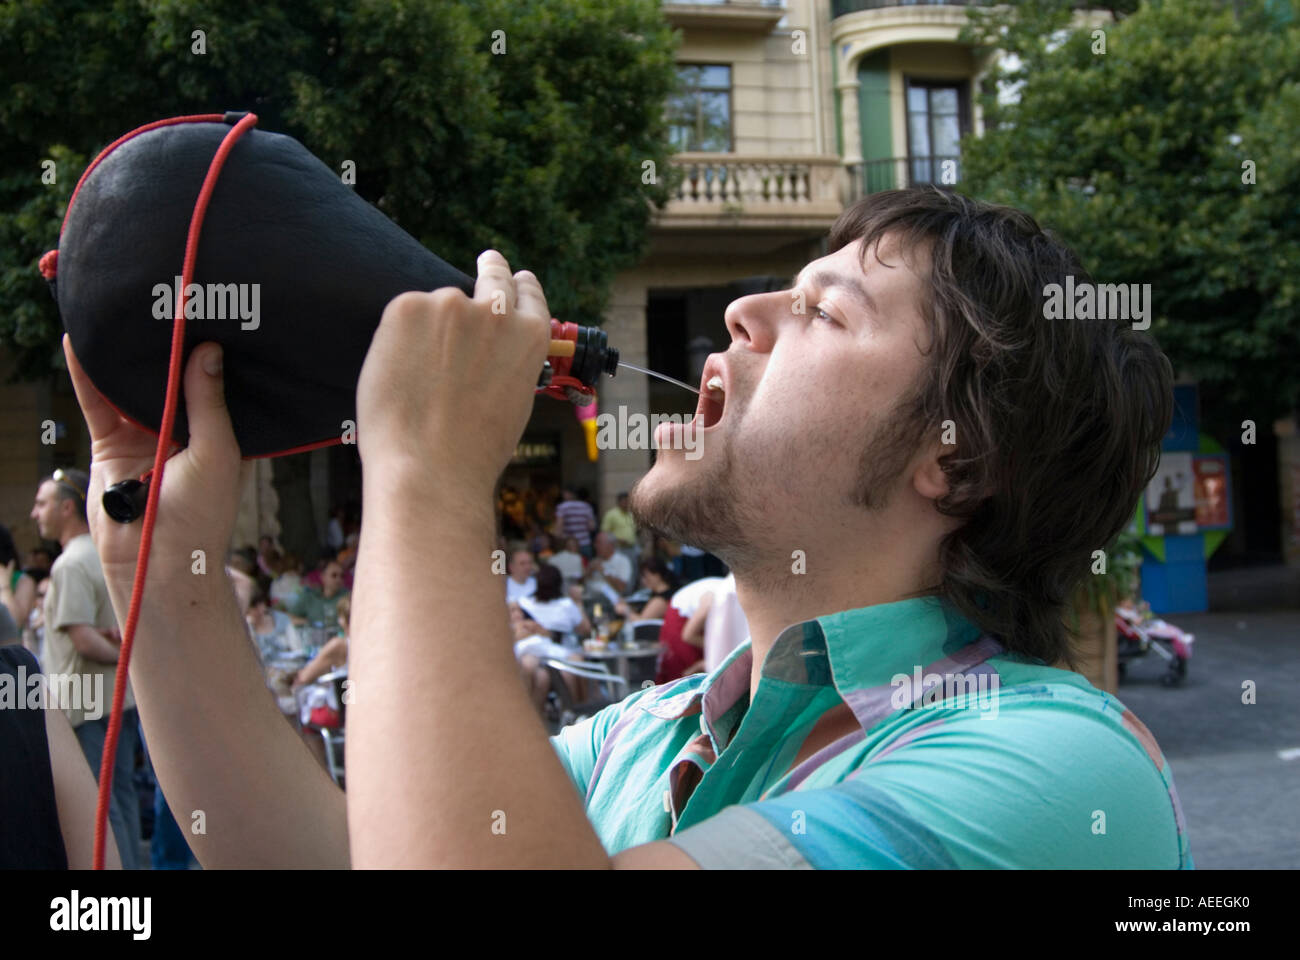 A San Photo 7805487 Alamy Wine From - Young Leather Drinking Sack Stock Man Traditional